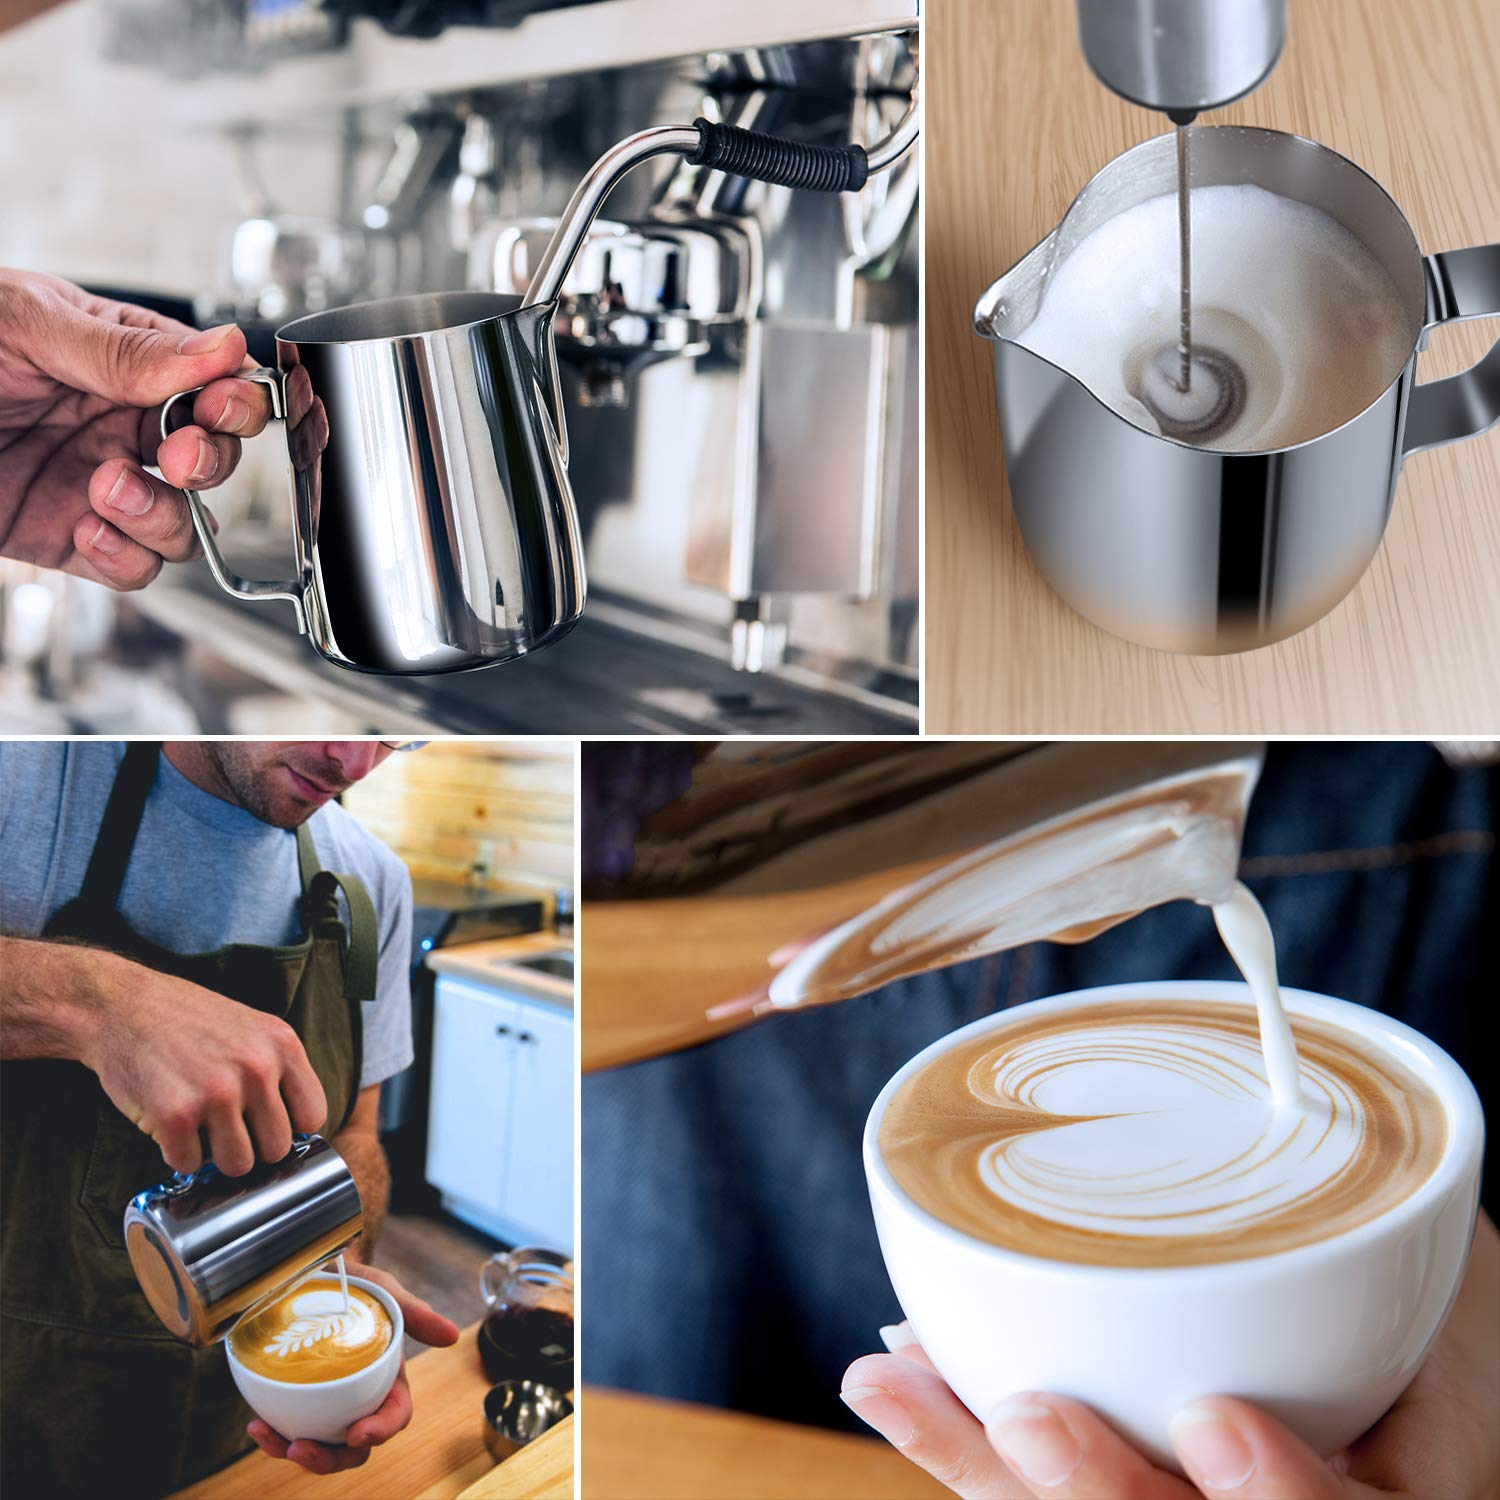 Milk Frothing Pitcher 600ml/350ml/900ml (20oz/12oz/32oz) Steaming Pitchers Stainless Steel Milk/Coffee/Cappuccino/Latte Art Barista Steam Pitchers Milk Jug Cup with Decorating Art Pen, Latte Arts by Adorever (Image #5)